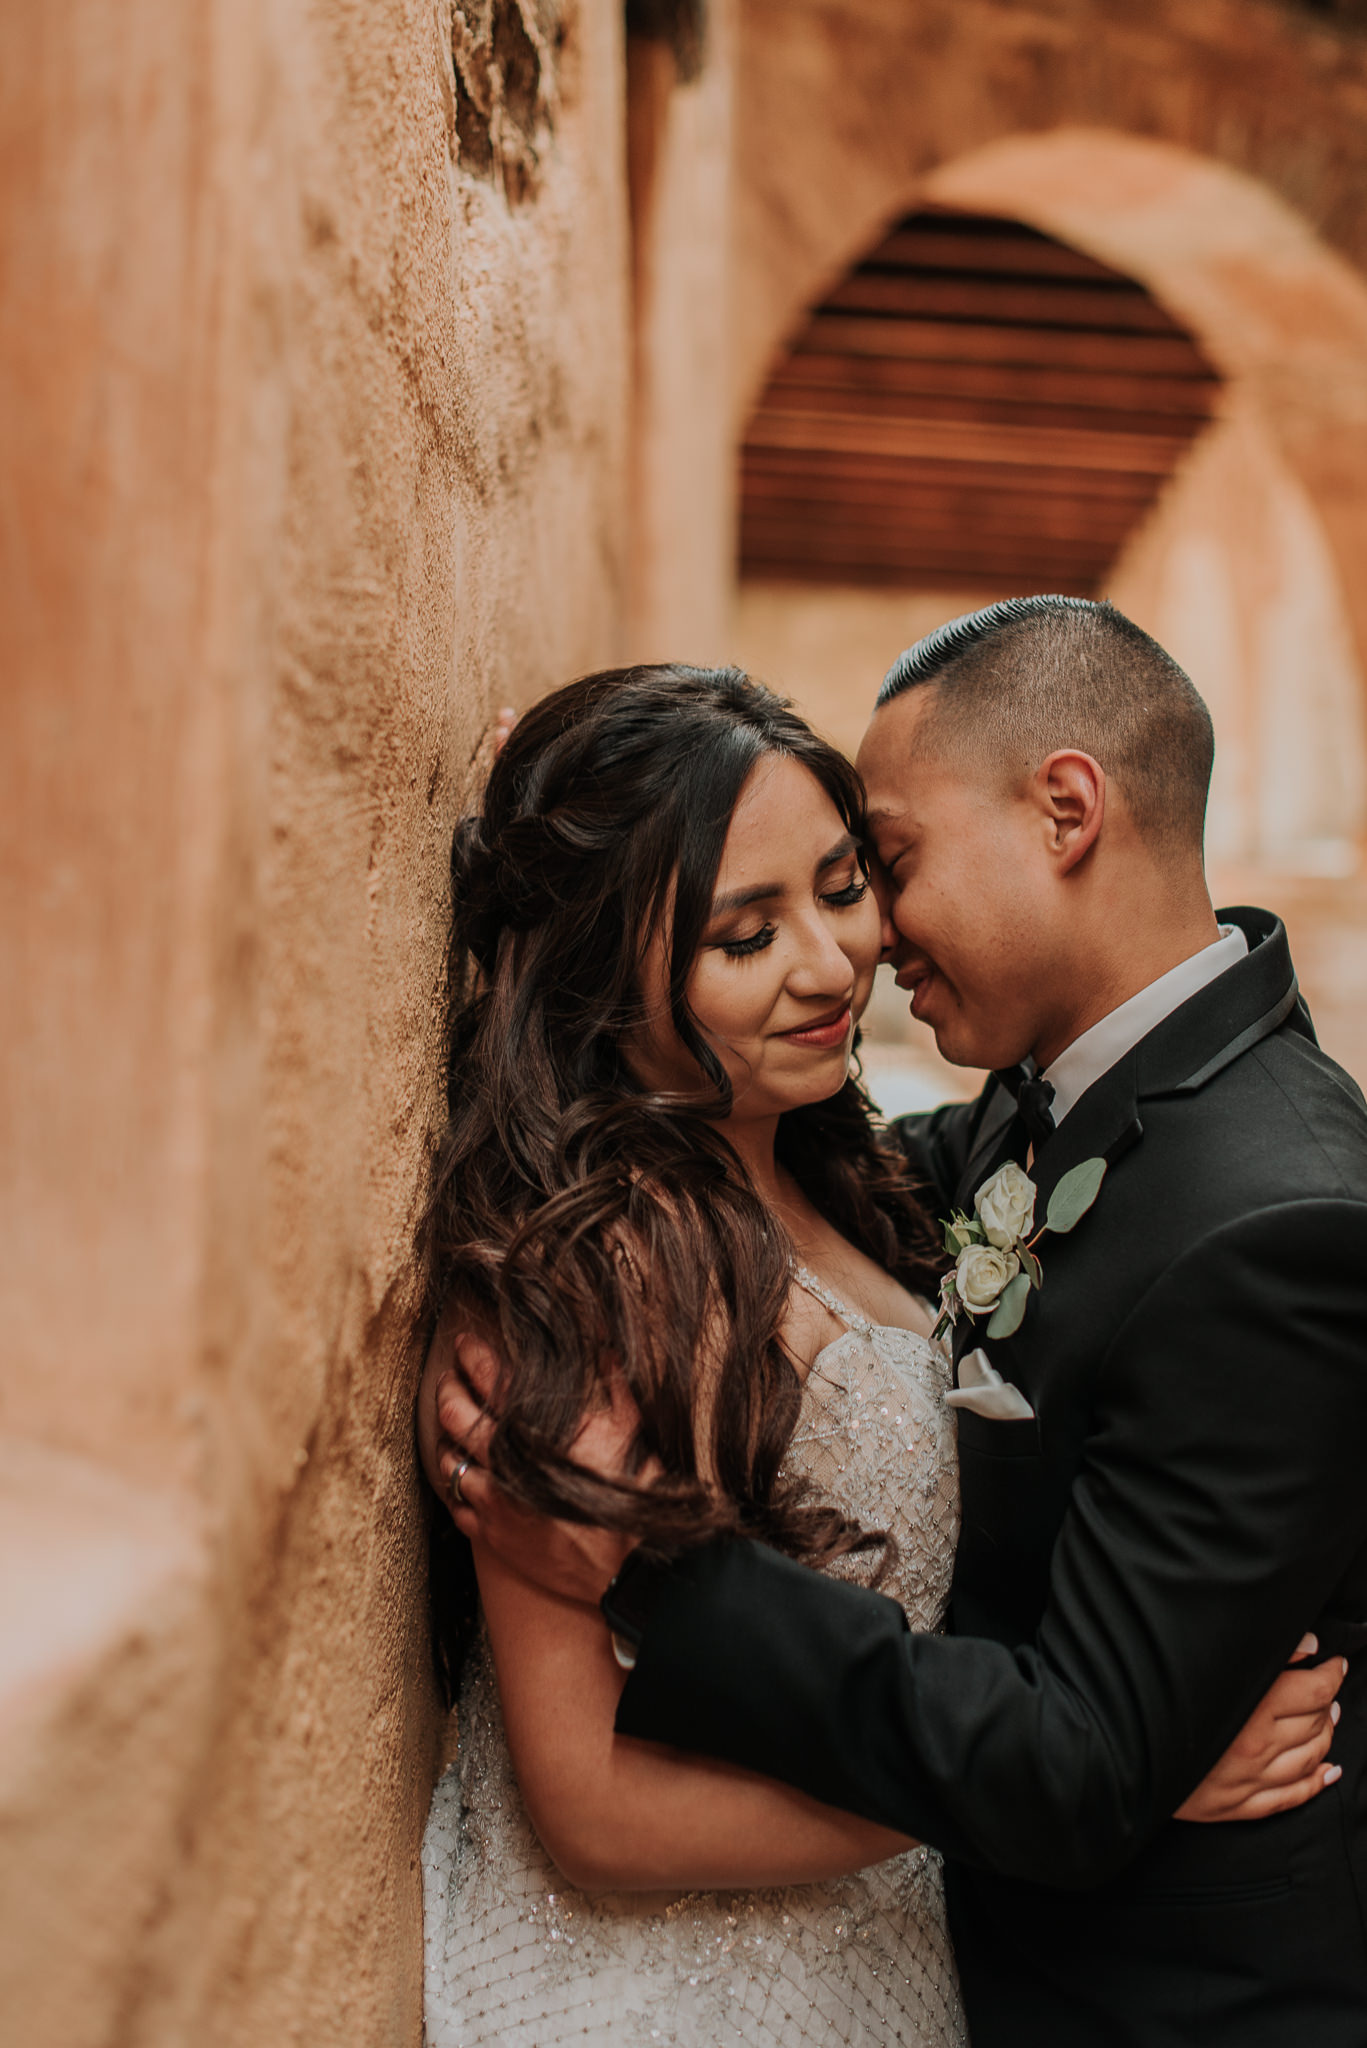 2019-04-05_Brittany_and_Nick_-_Married_-_San_Juan_Capistrano-88.jpg